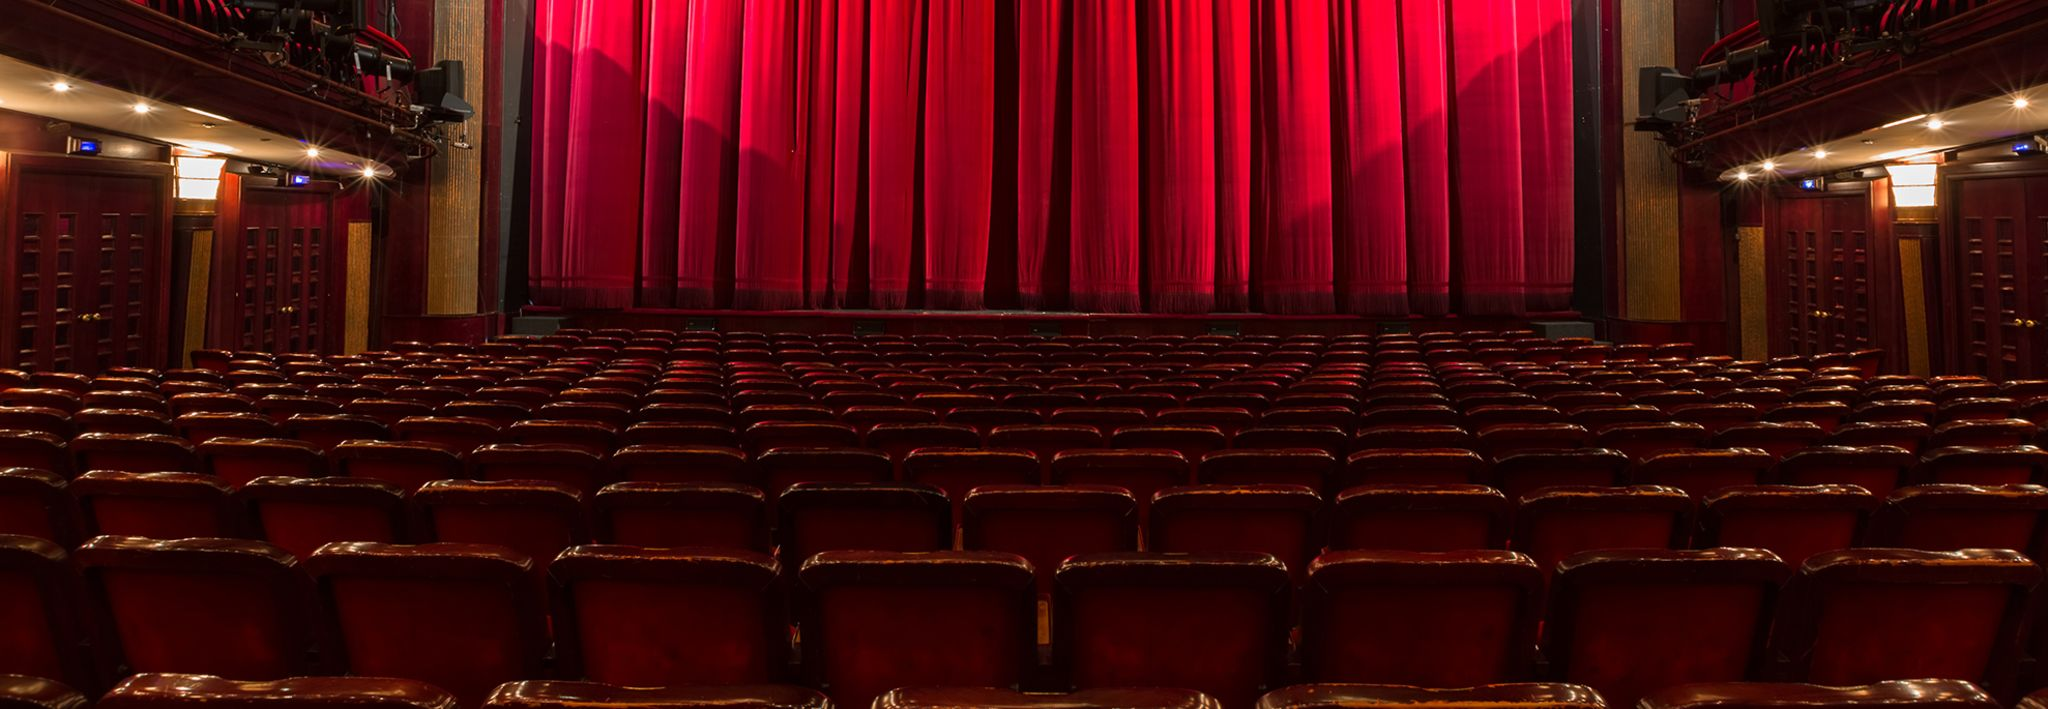 Theatre red curtain.